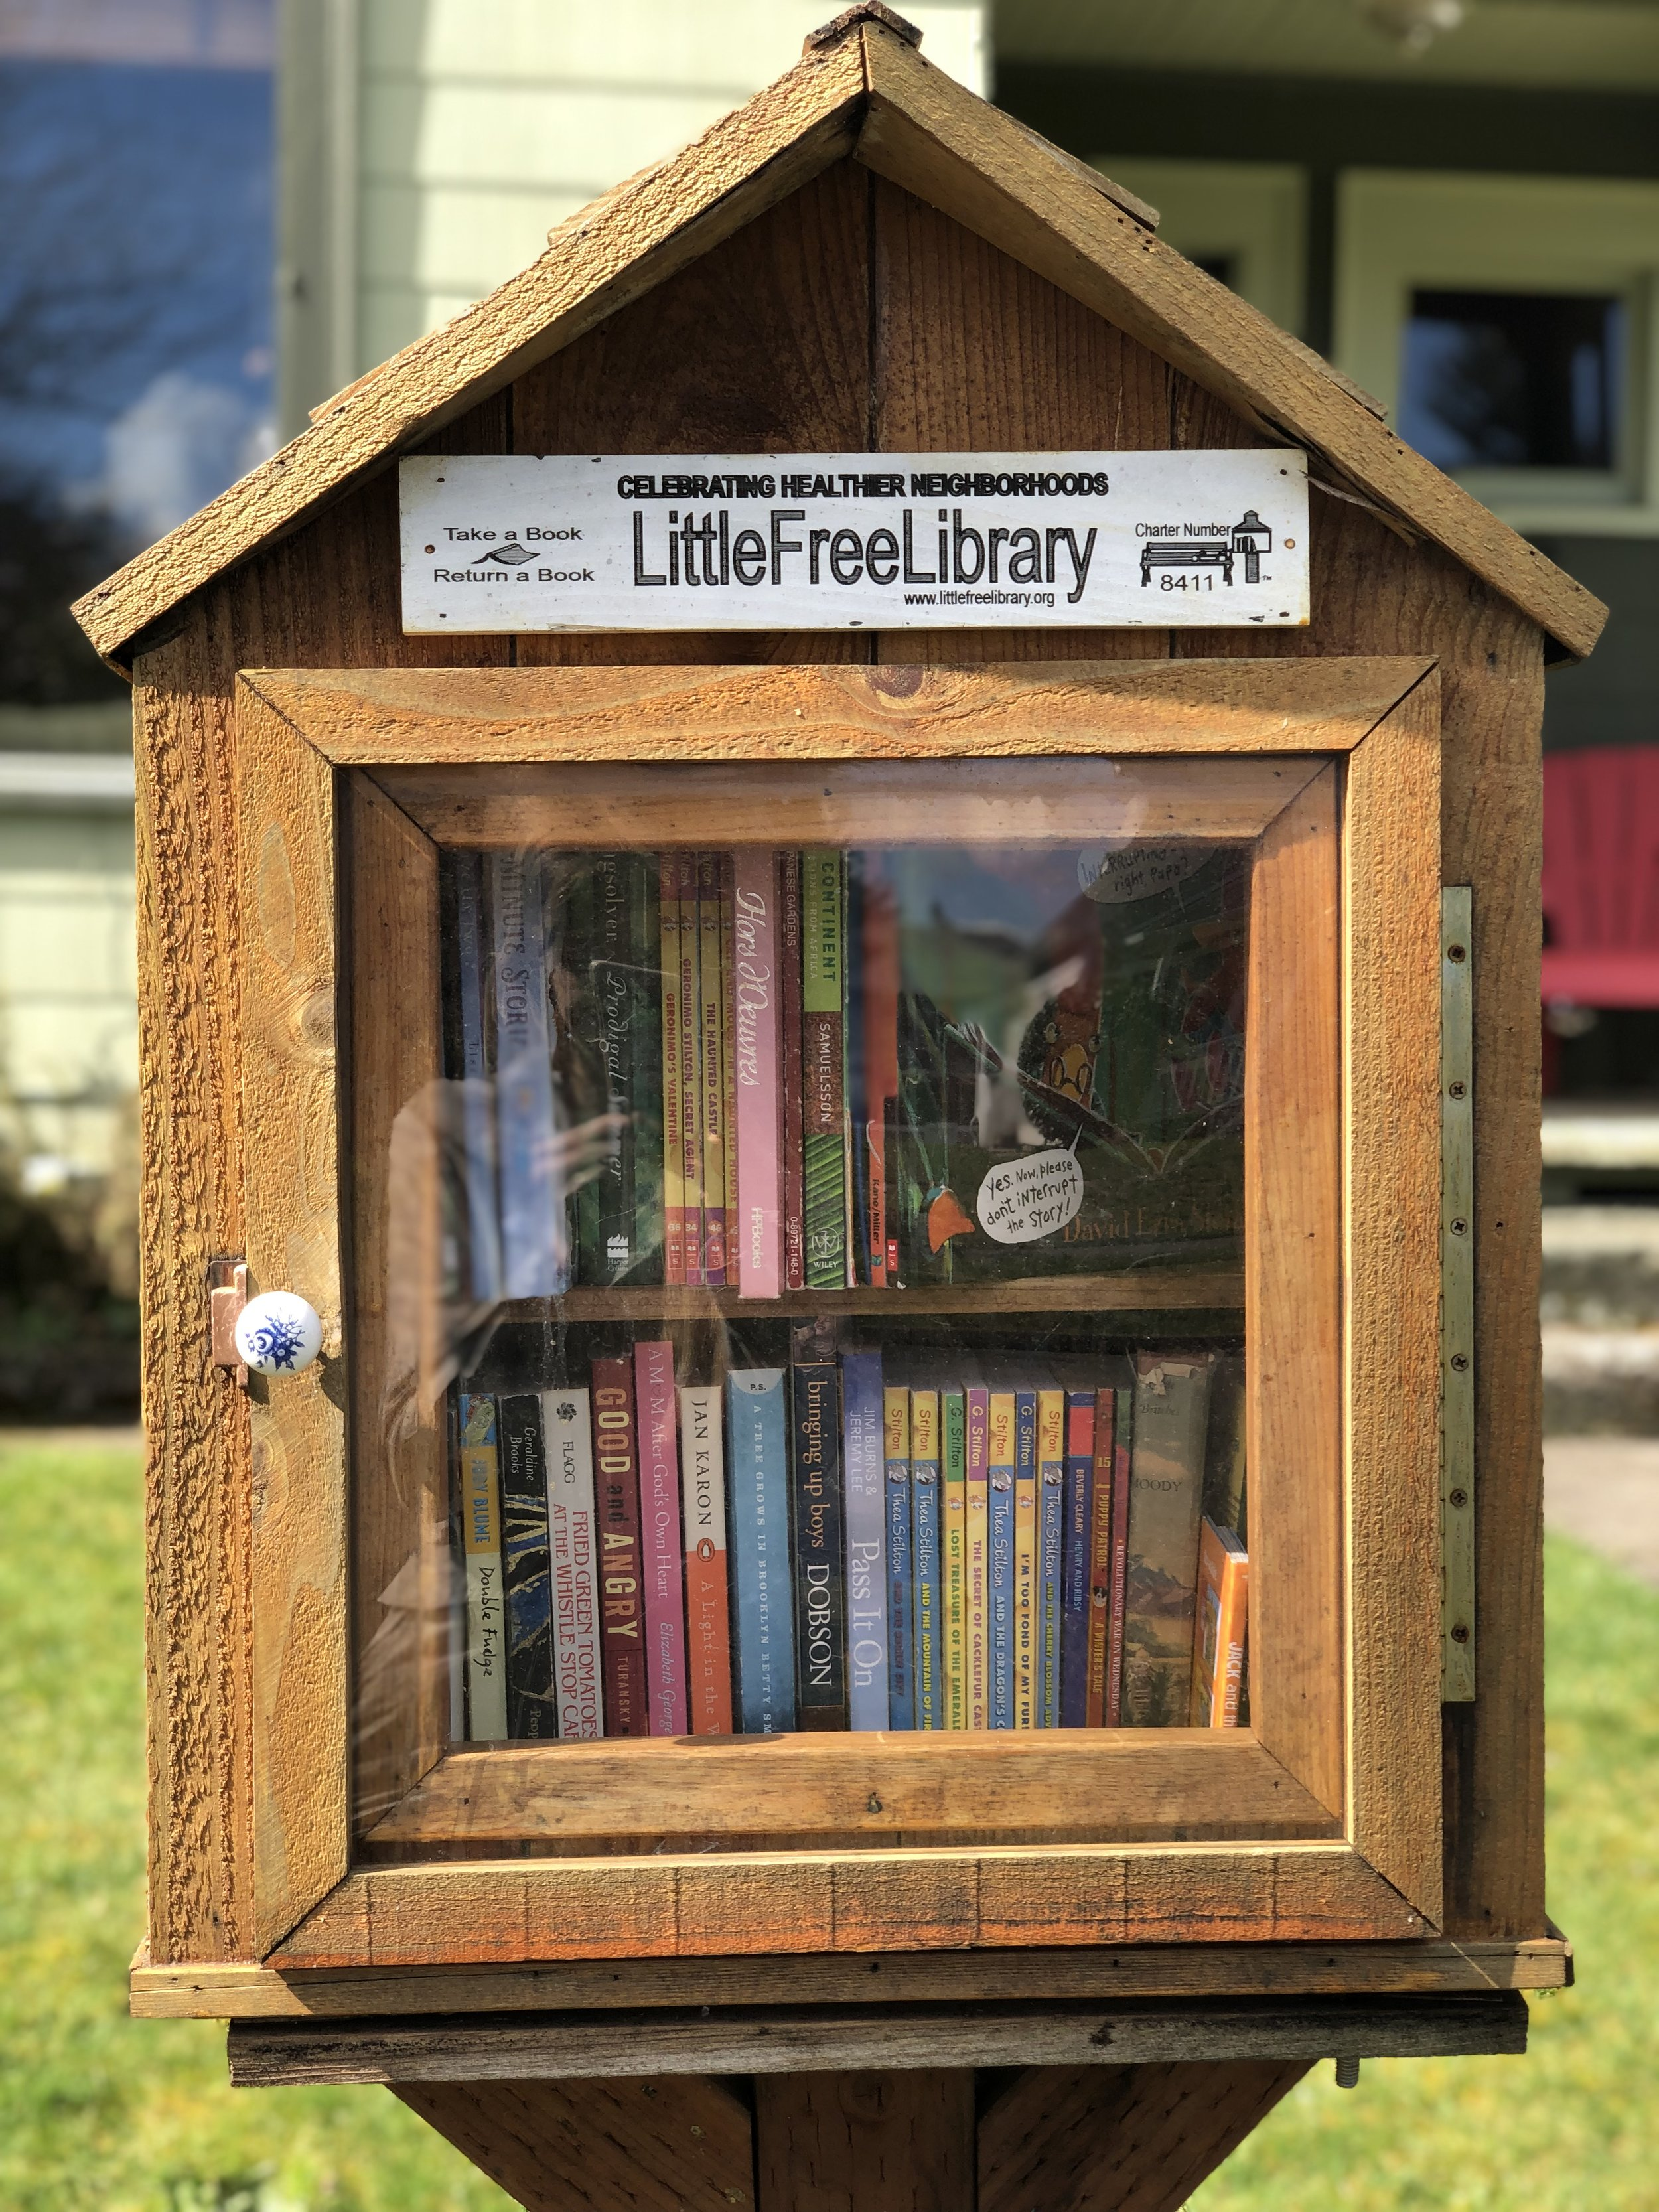 Another of Tacoma's one-of-a-kind Little Libraries. This shingled, woodsy gem is at 922 S Cushman. Notice the Charter Number on this library. Libraries officially registered with Little Free Library show up on searchable maps managed by the nonprofit.